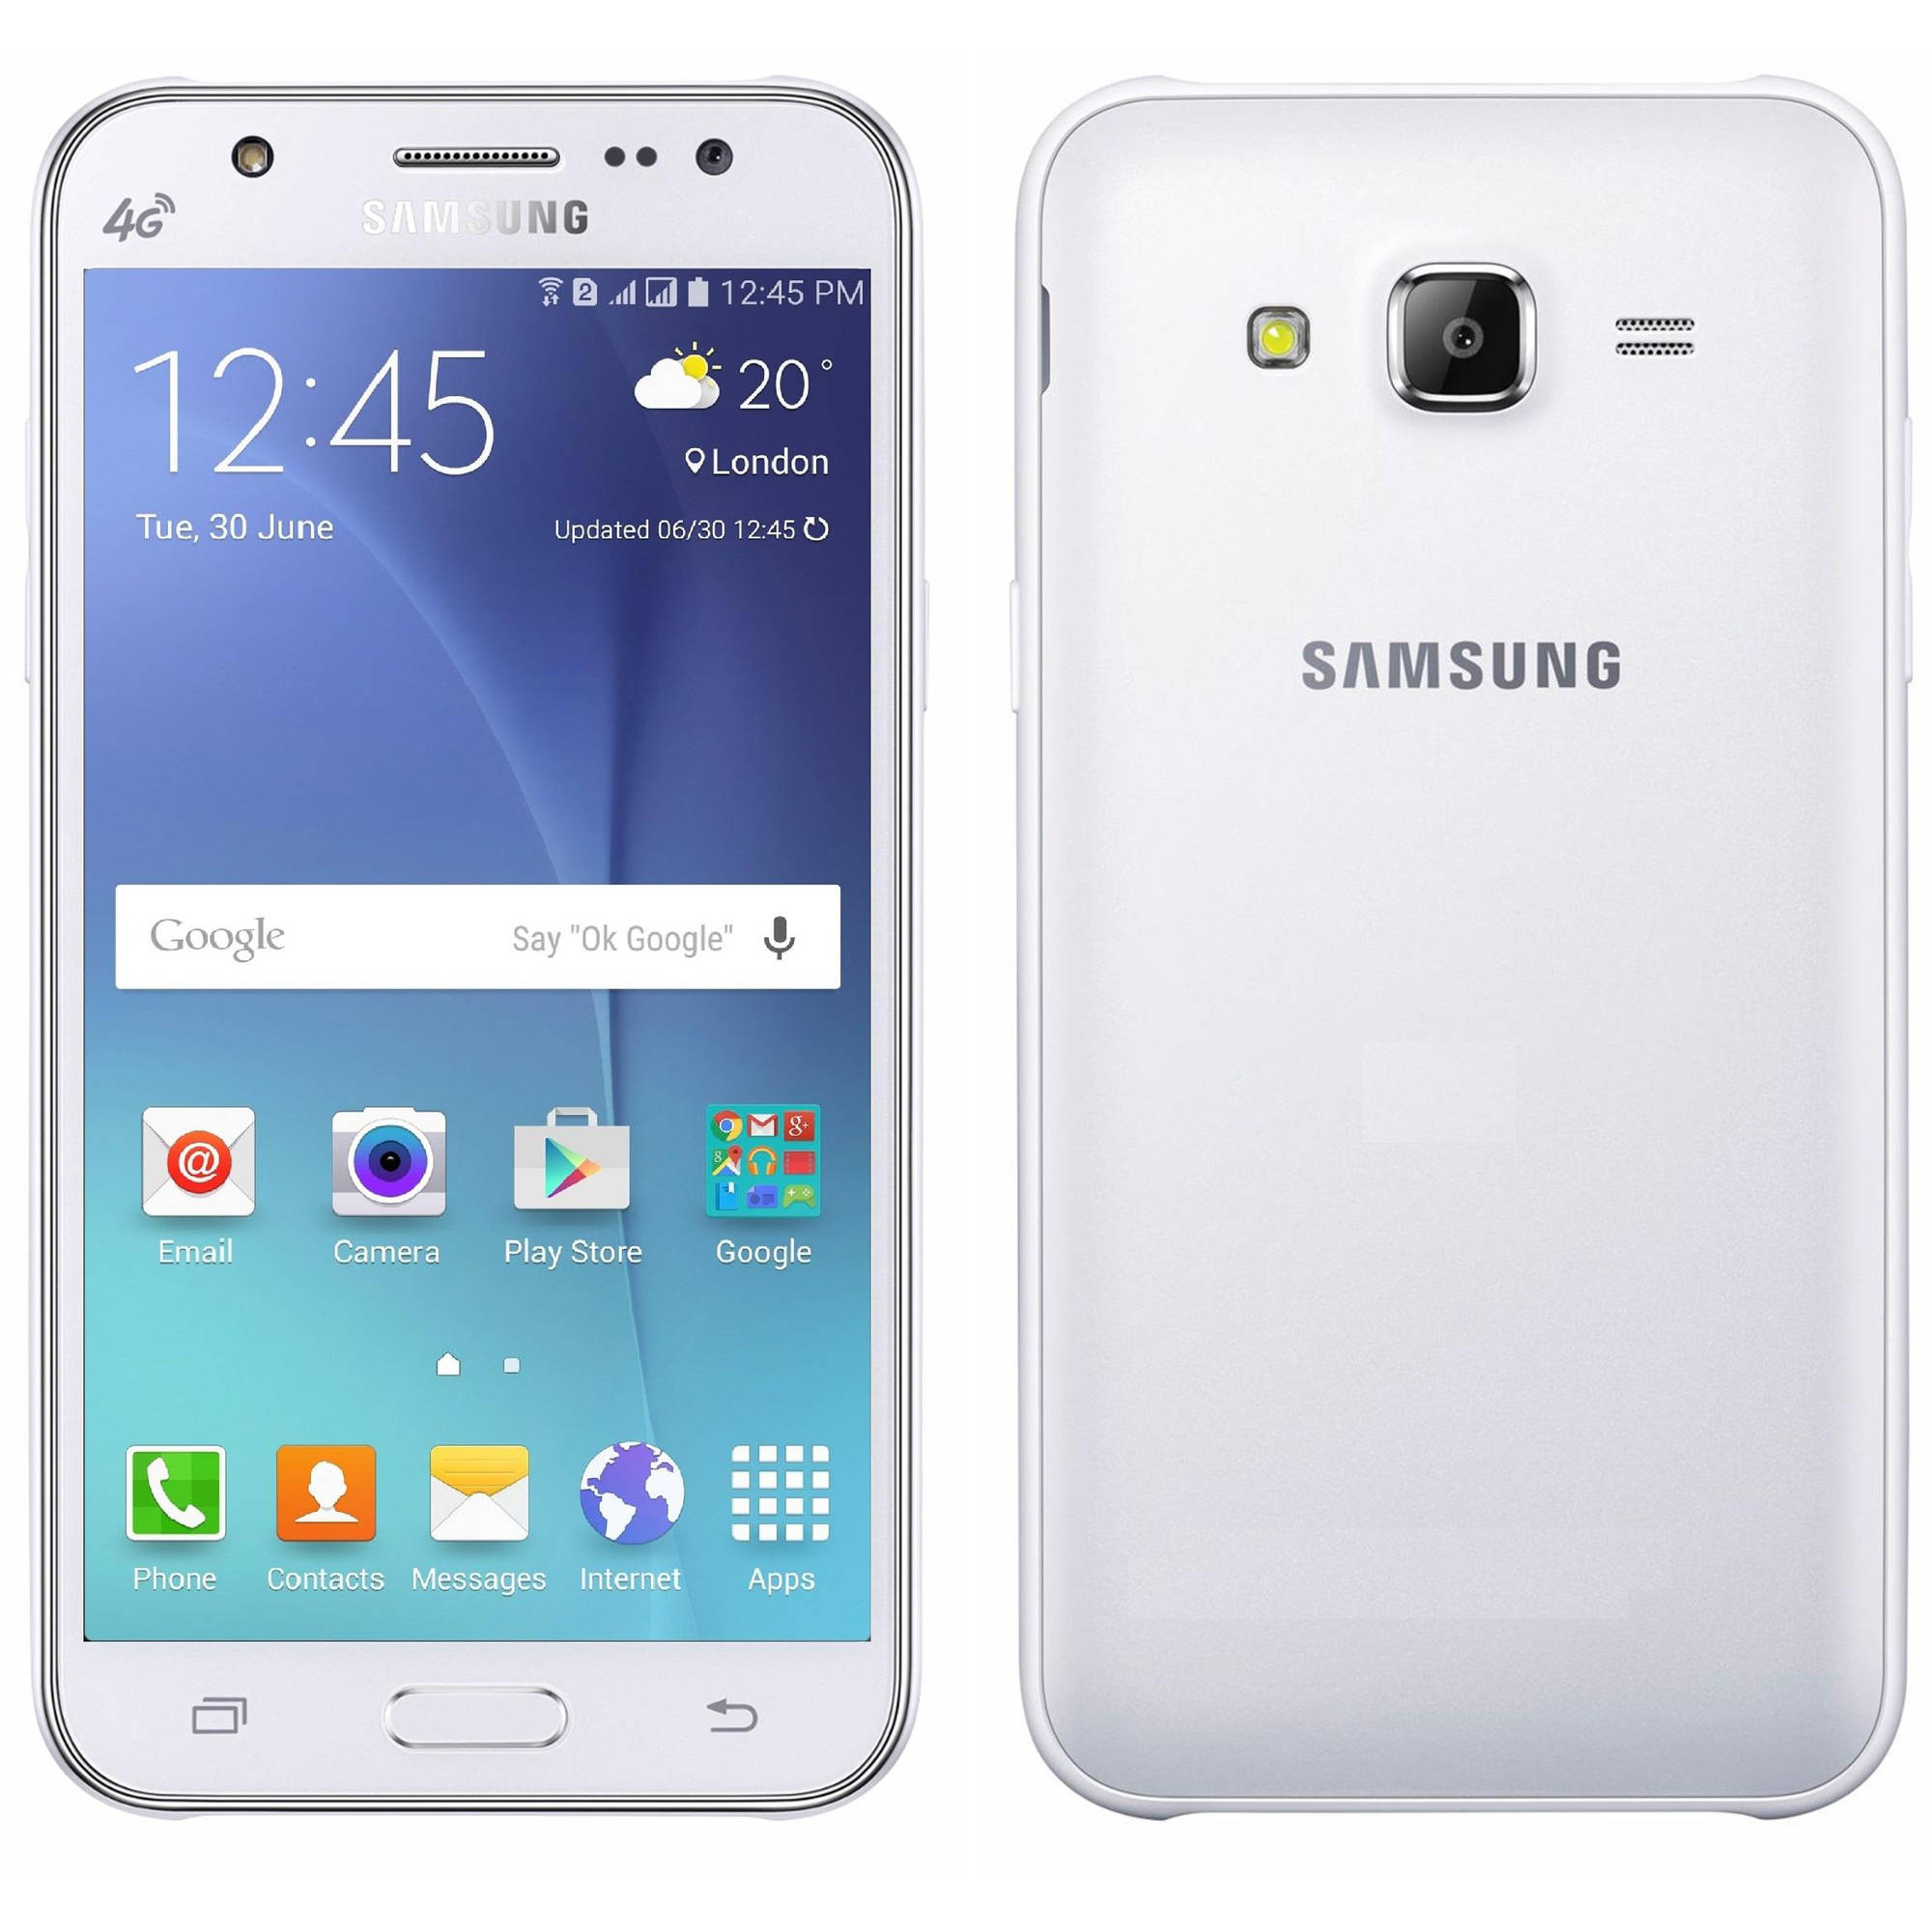 Samsung Galaxy J5 J500M 8GB GSM 4G LTE Android Smartphone ...